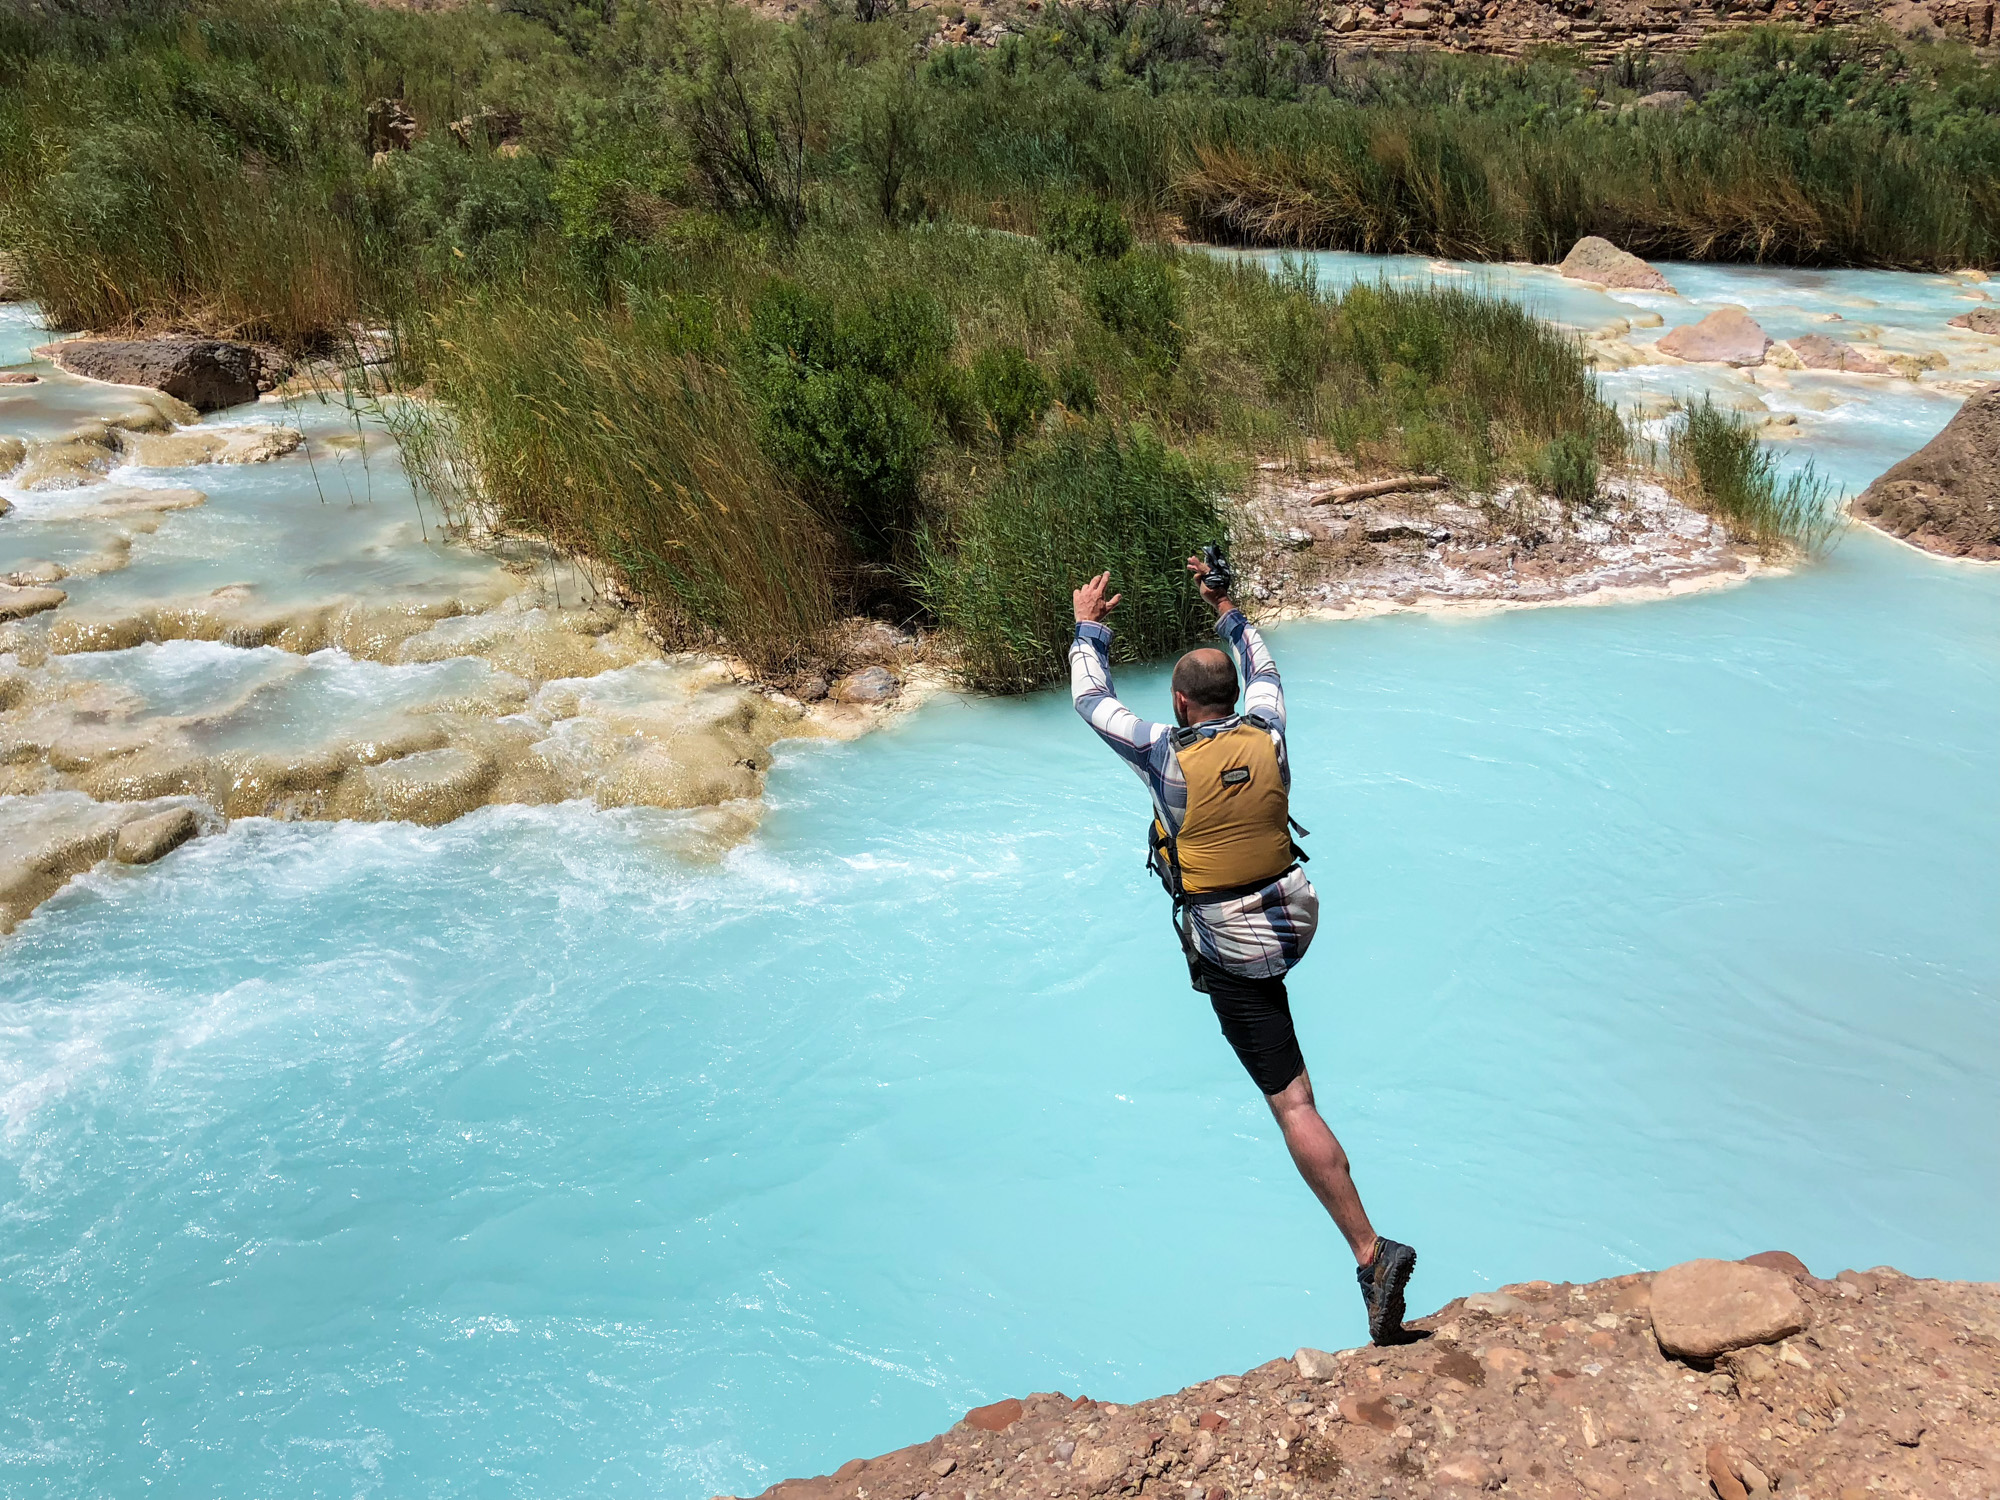 Jumping into the turquoise blue of the Little Colorado River